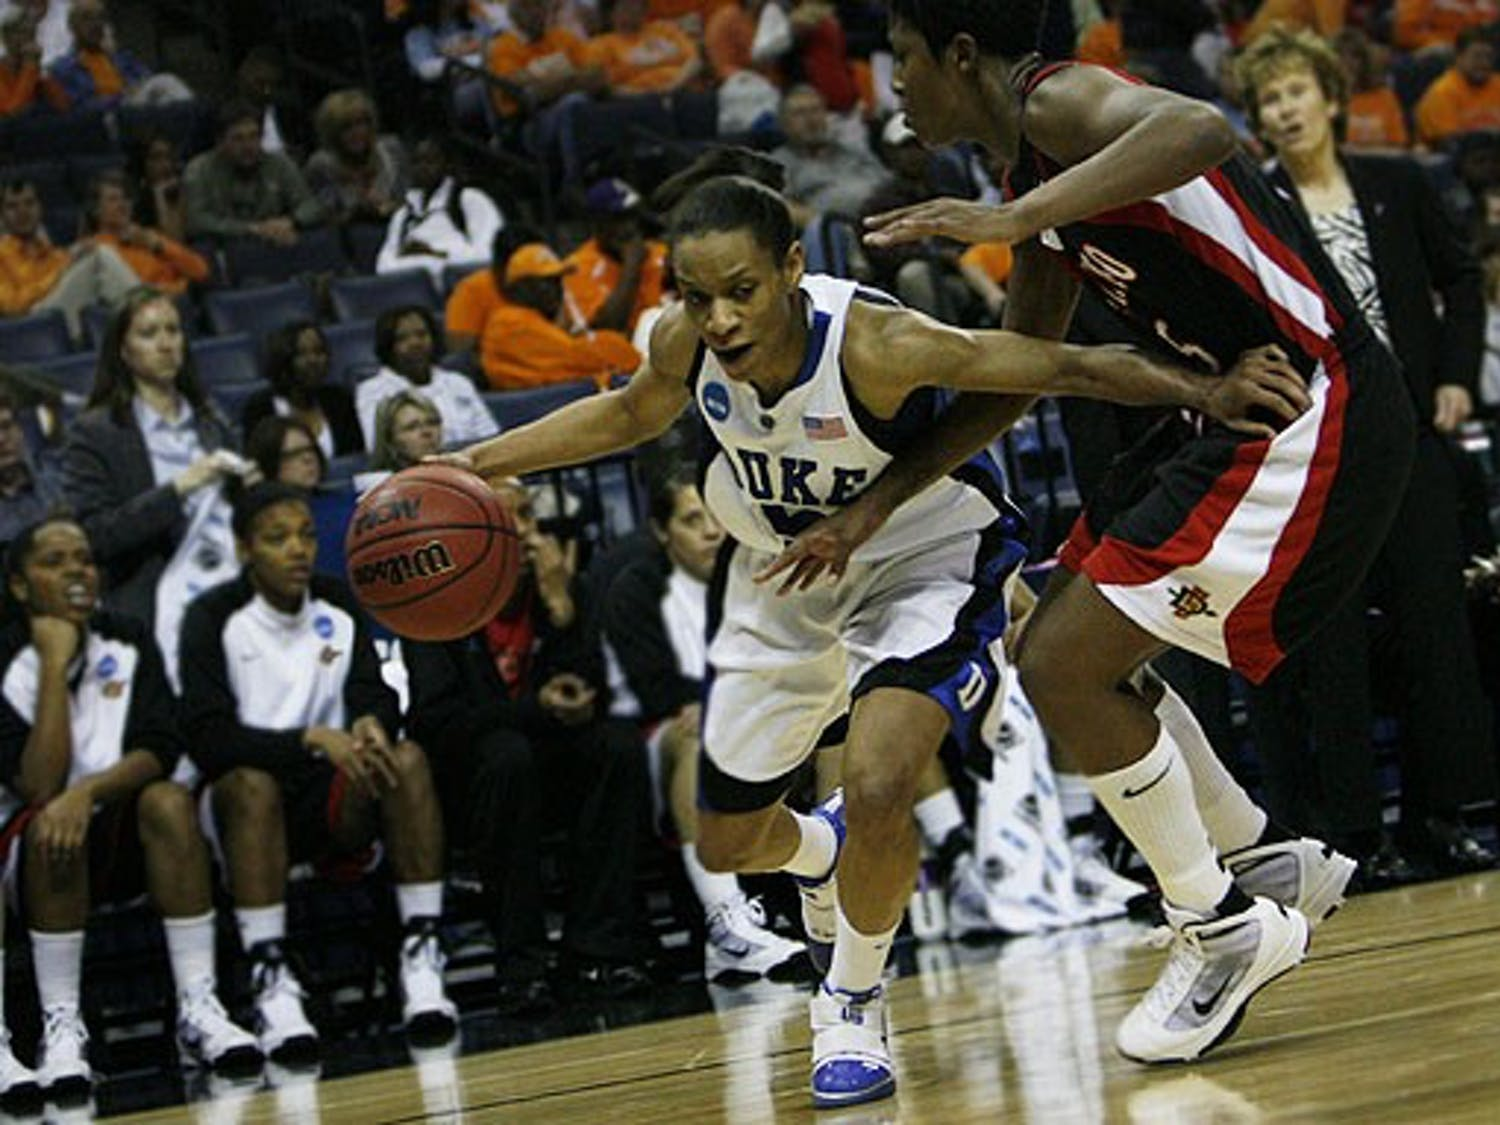 Jasmine Thomas led the Blue Devils to a 66-58 victory over the San Diego State Aztecs, scoring a total of 29 points.